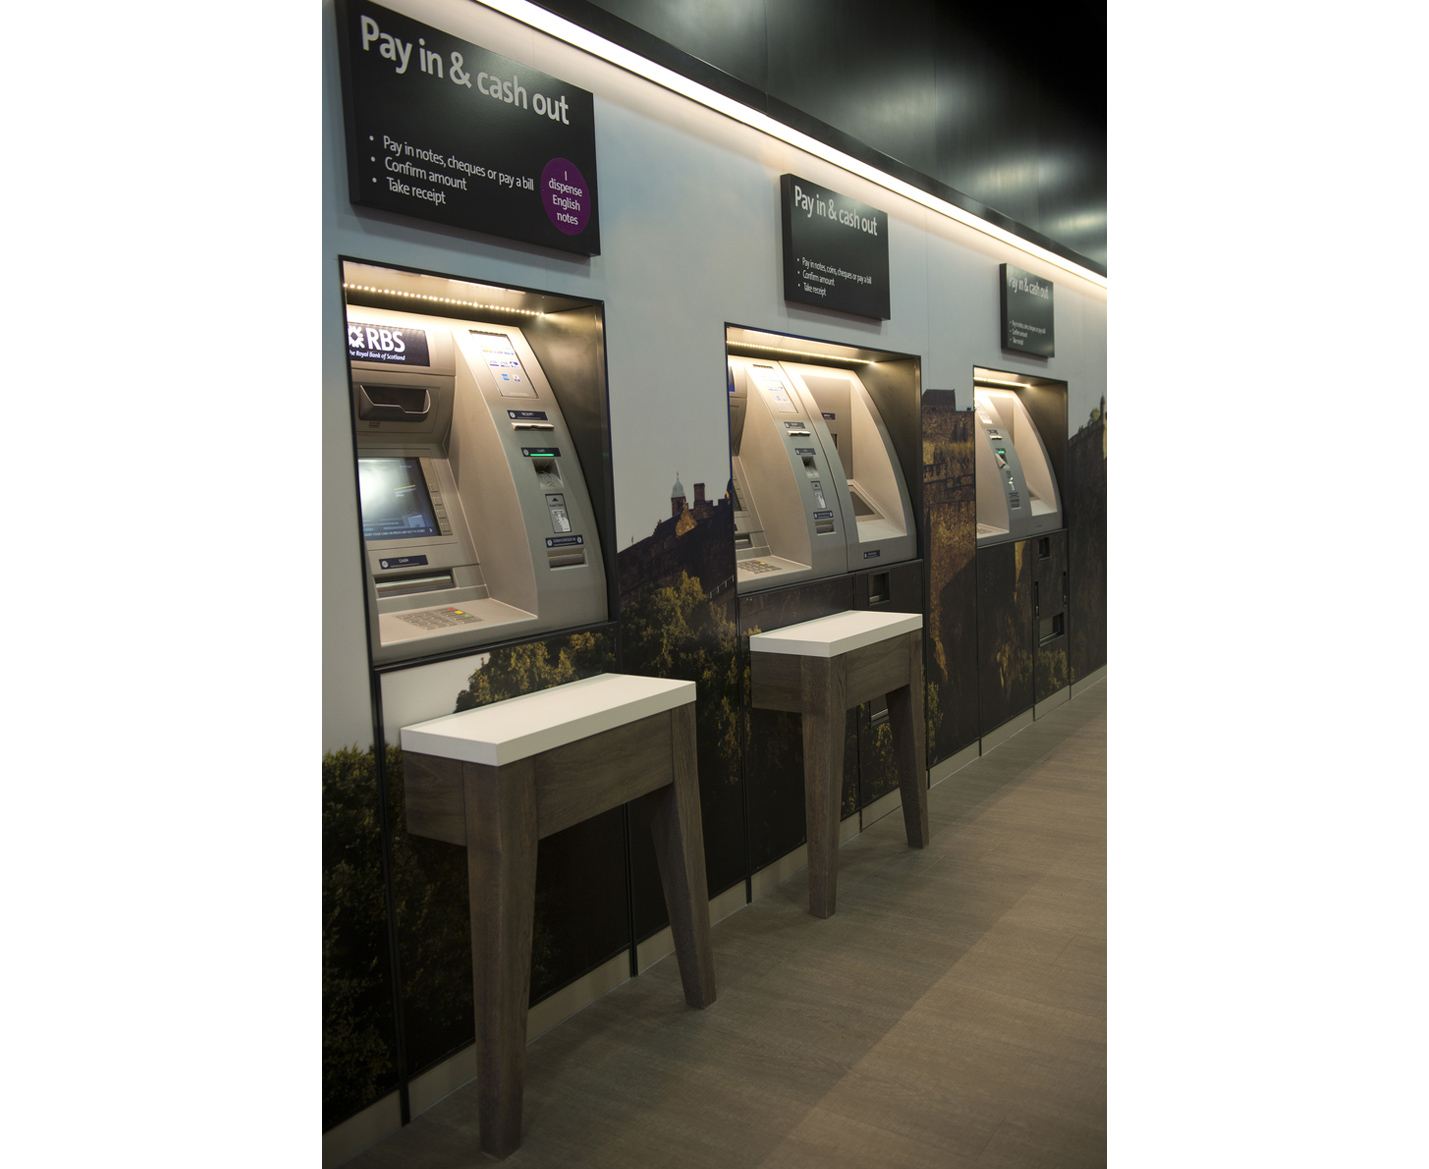 Royal Bank of Scotland smart ATM's